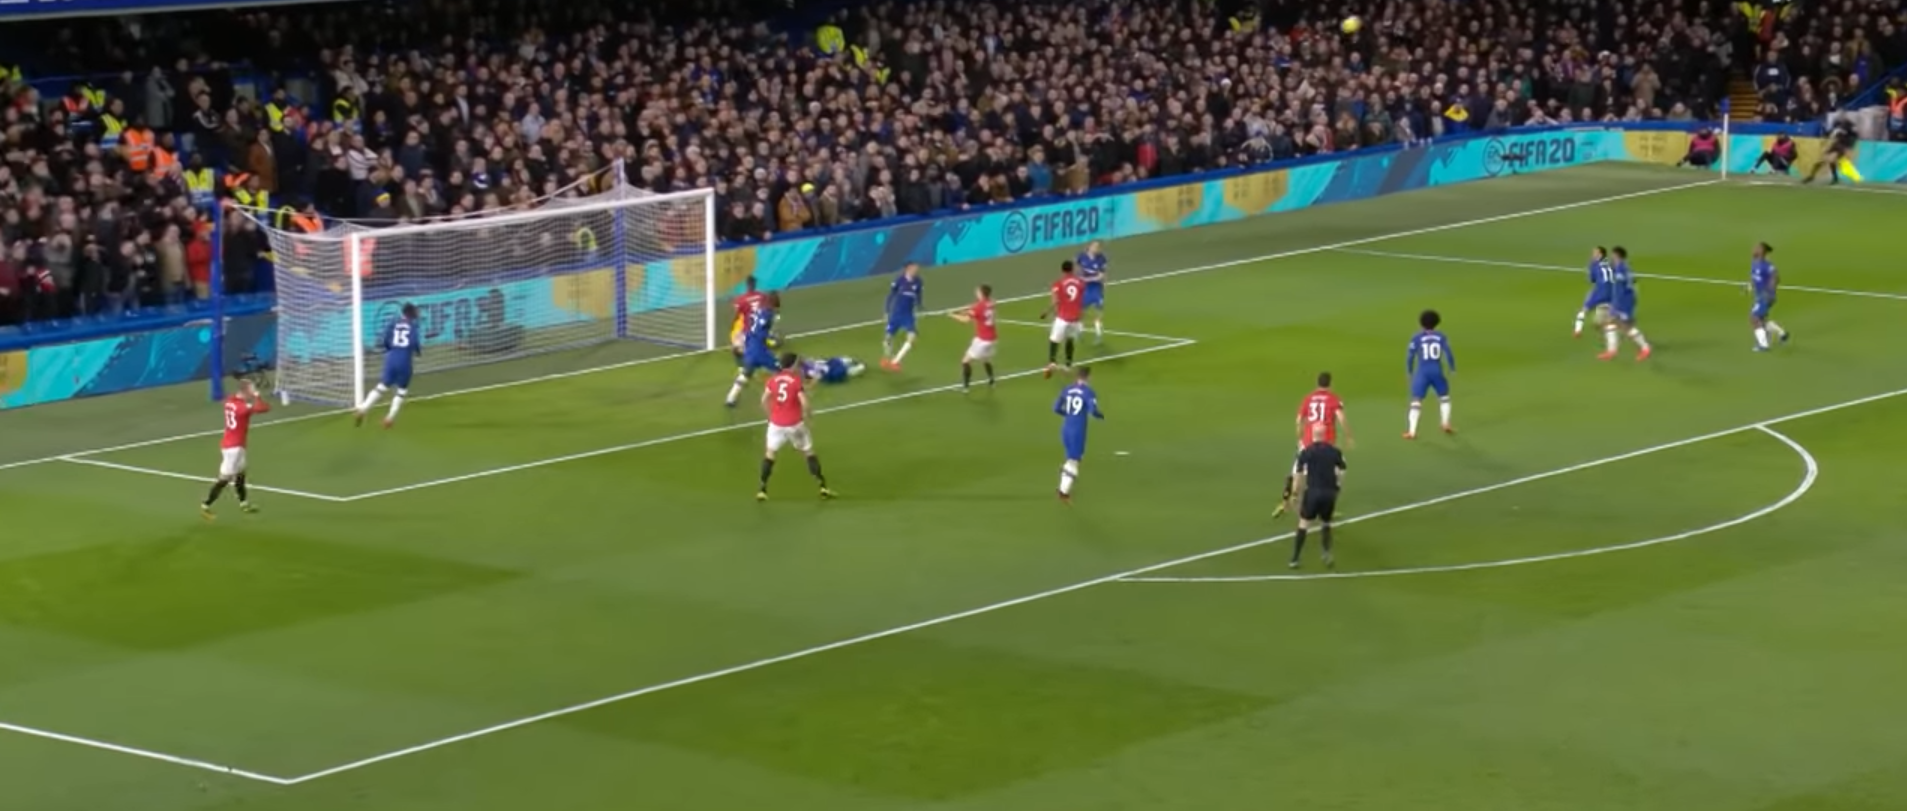 Watch Fa Cup Live Matches Between Manchester United Vs Chelsea In 2020 Fa Cup Live Matches Manchester United